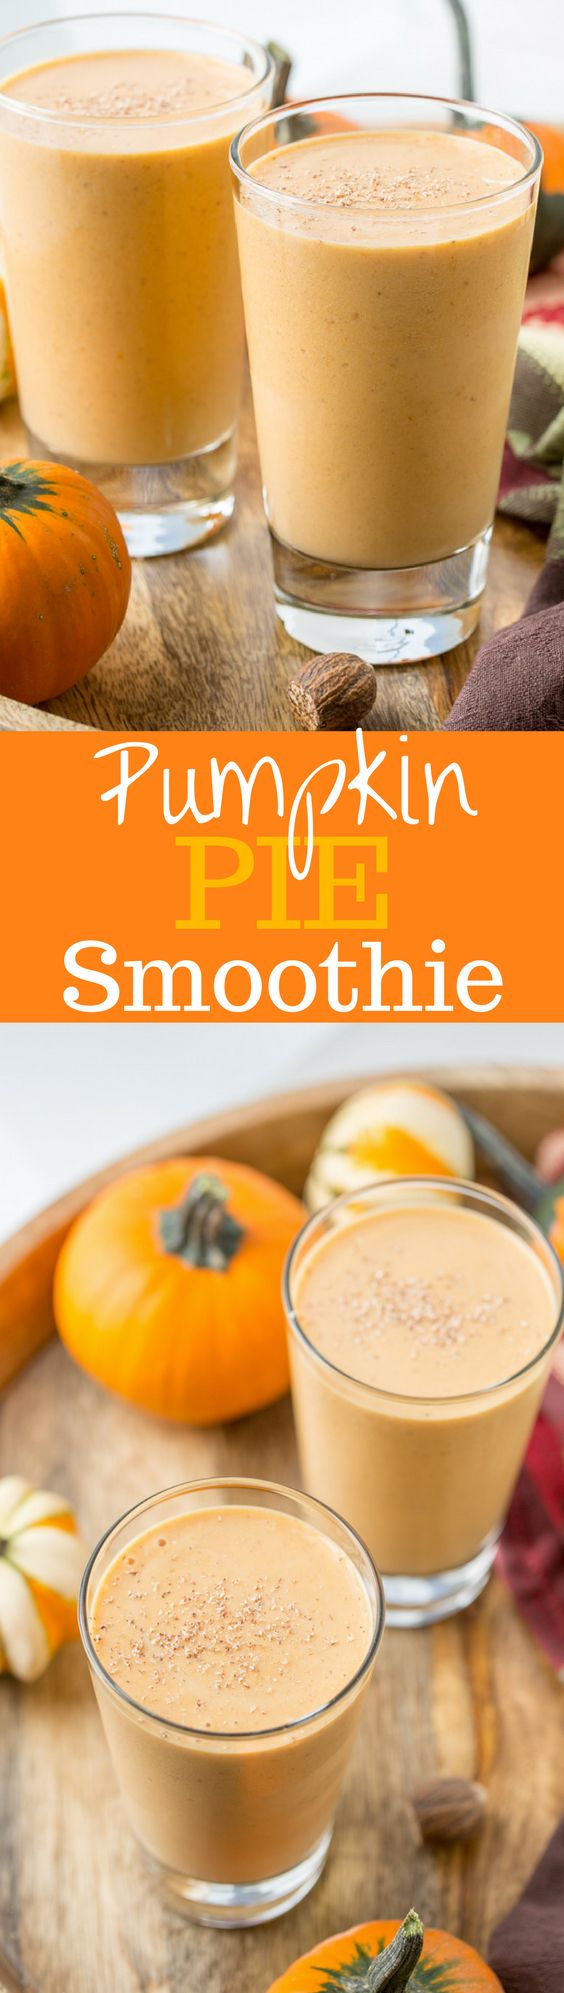 Pumpkin Pie Smoothie - Thick, rich, healthy and creamy, and it tastes like pumpkin pie in a glass. The perfect pumpkin pie craving buster! www.savingdessert.com